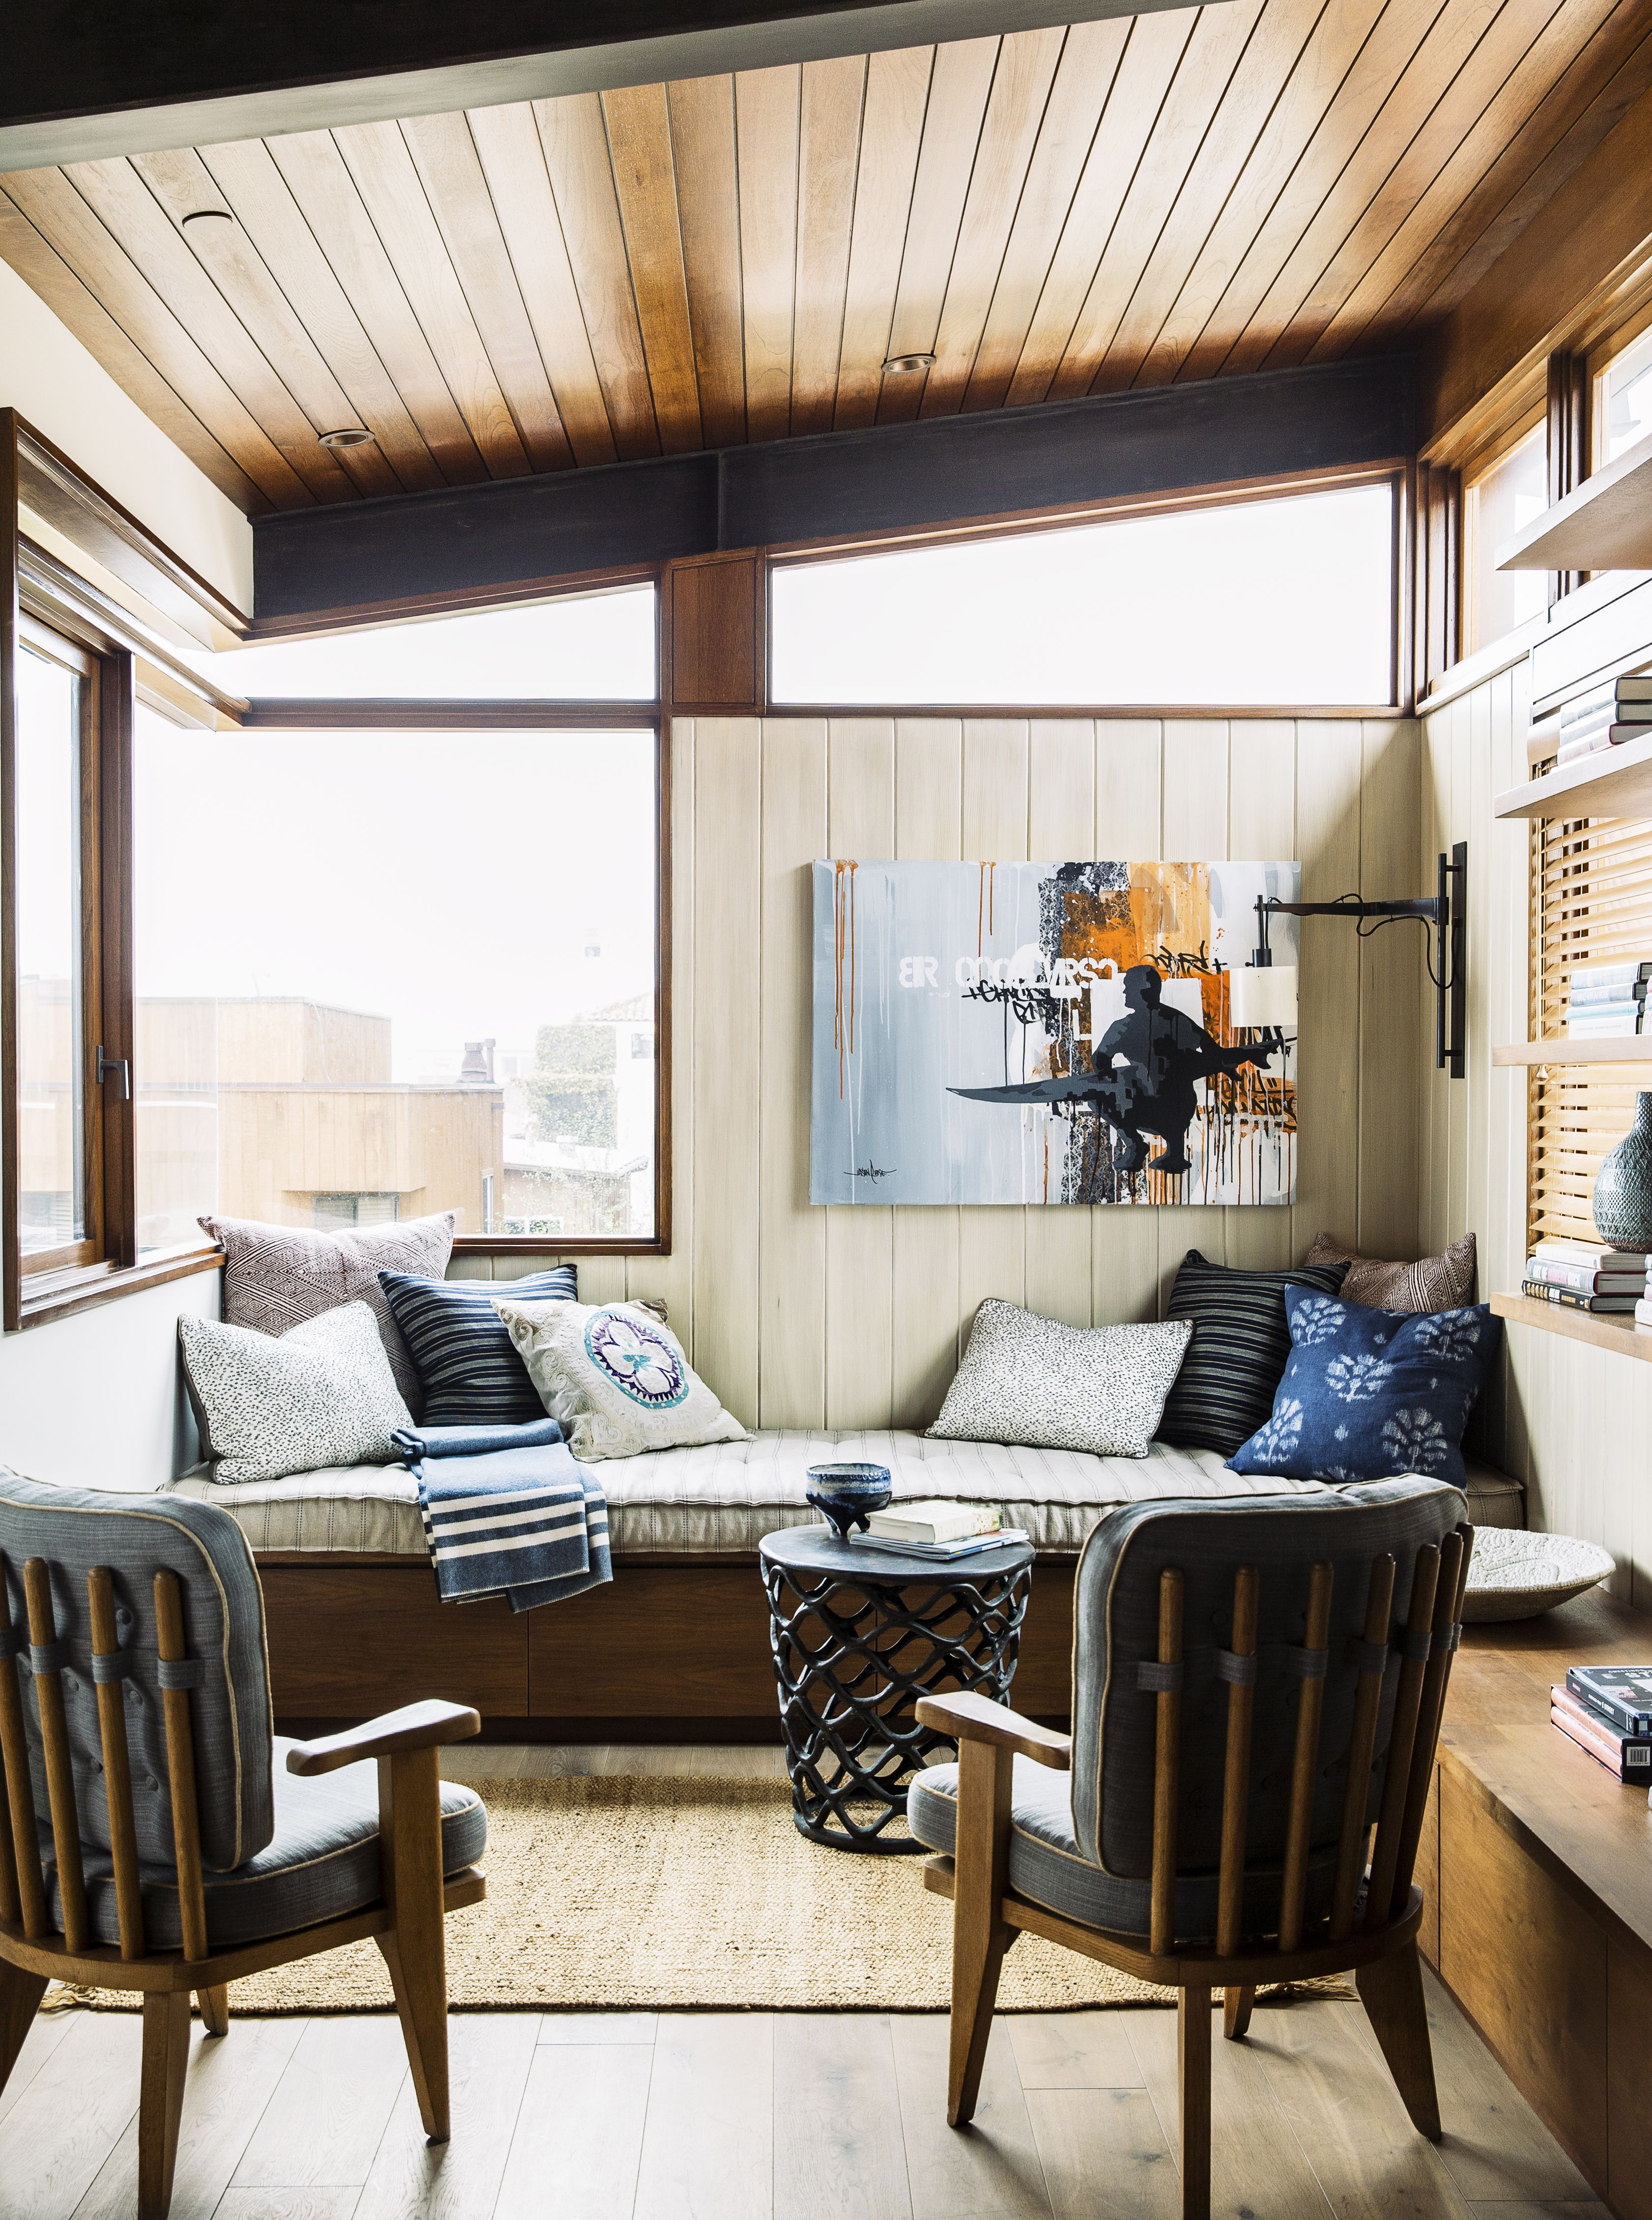 Small Space Furniture Ideas: Smart Small Living Room Ideas